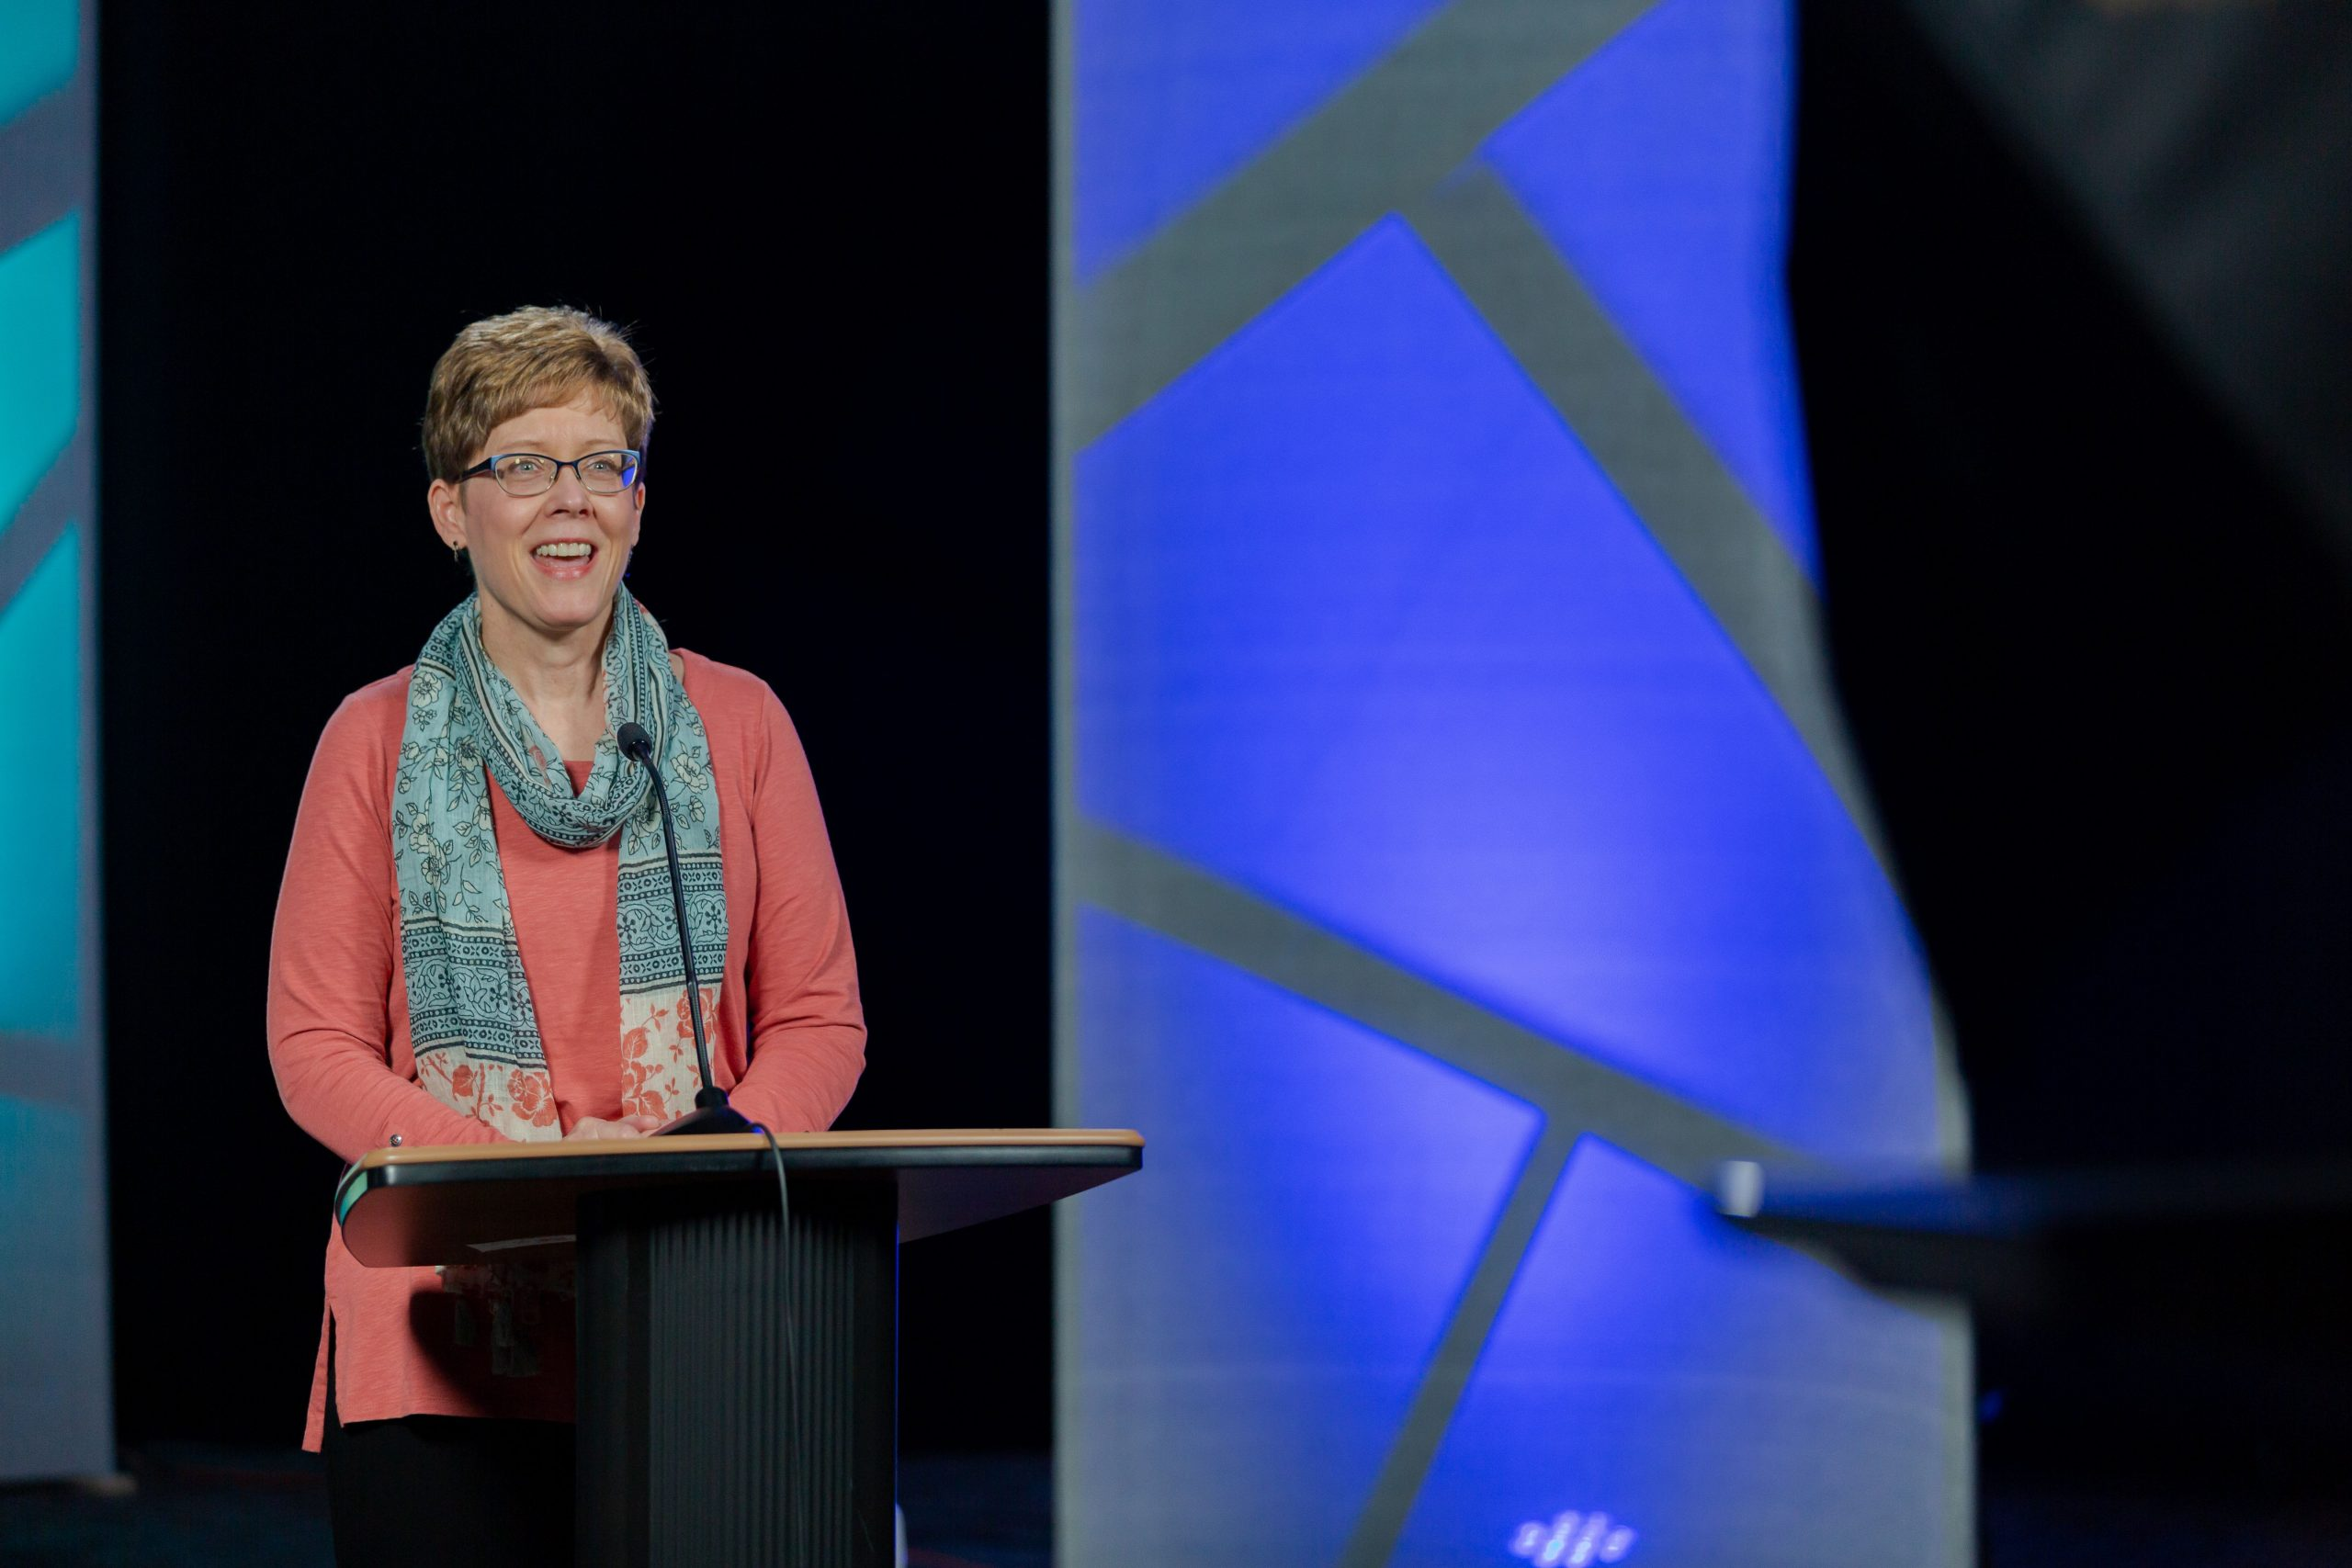 Conference Lay Leader Annette Erbes